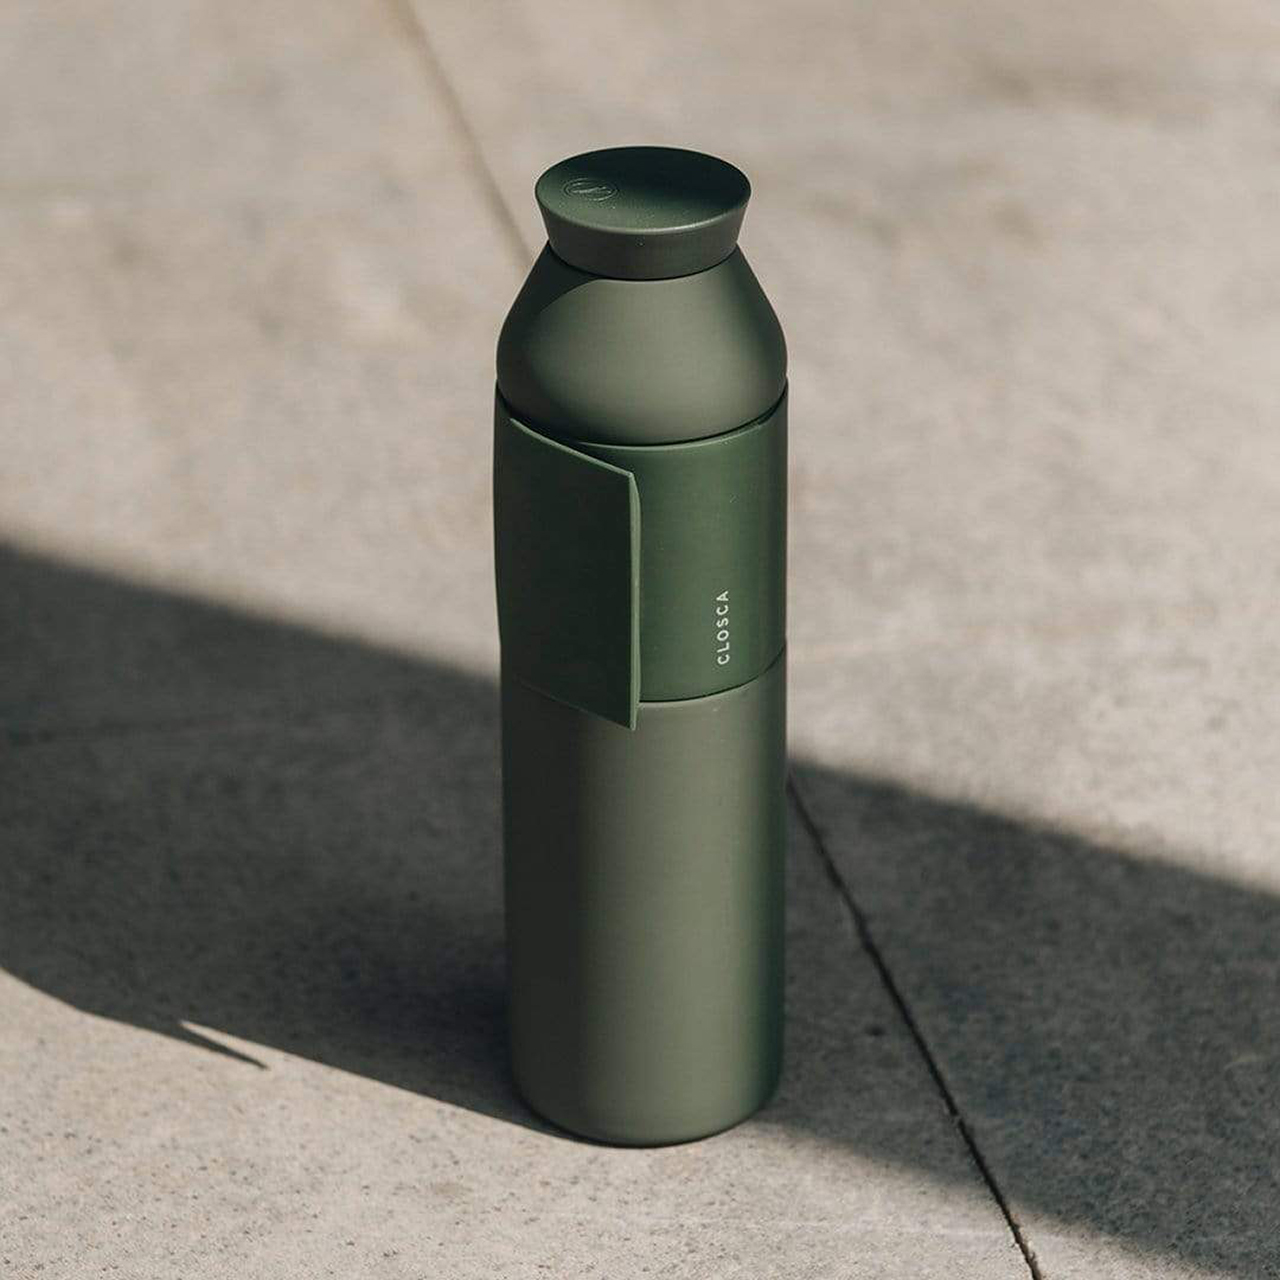 water bottle on pavement